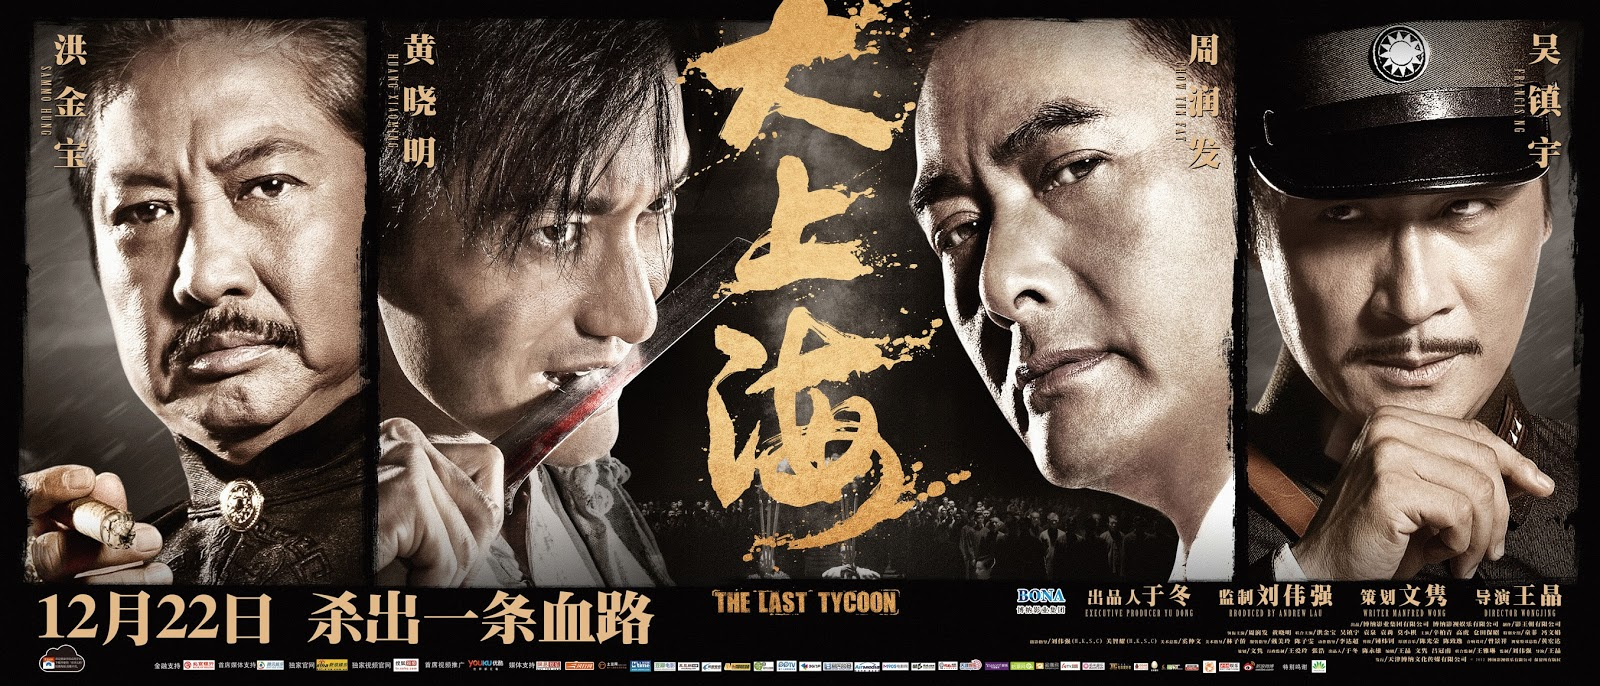 The Last Tycoon Movie